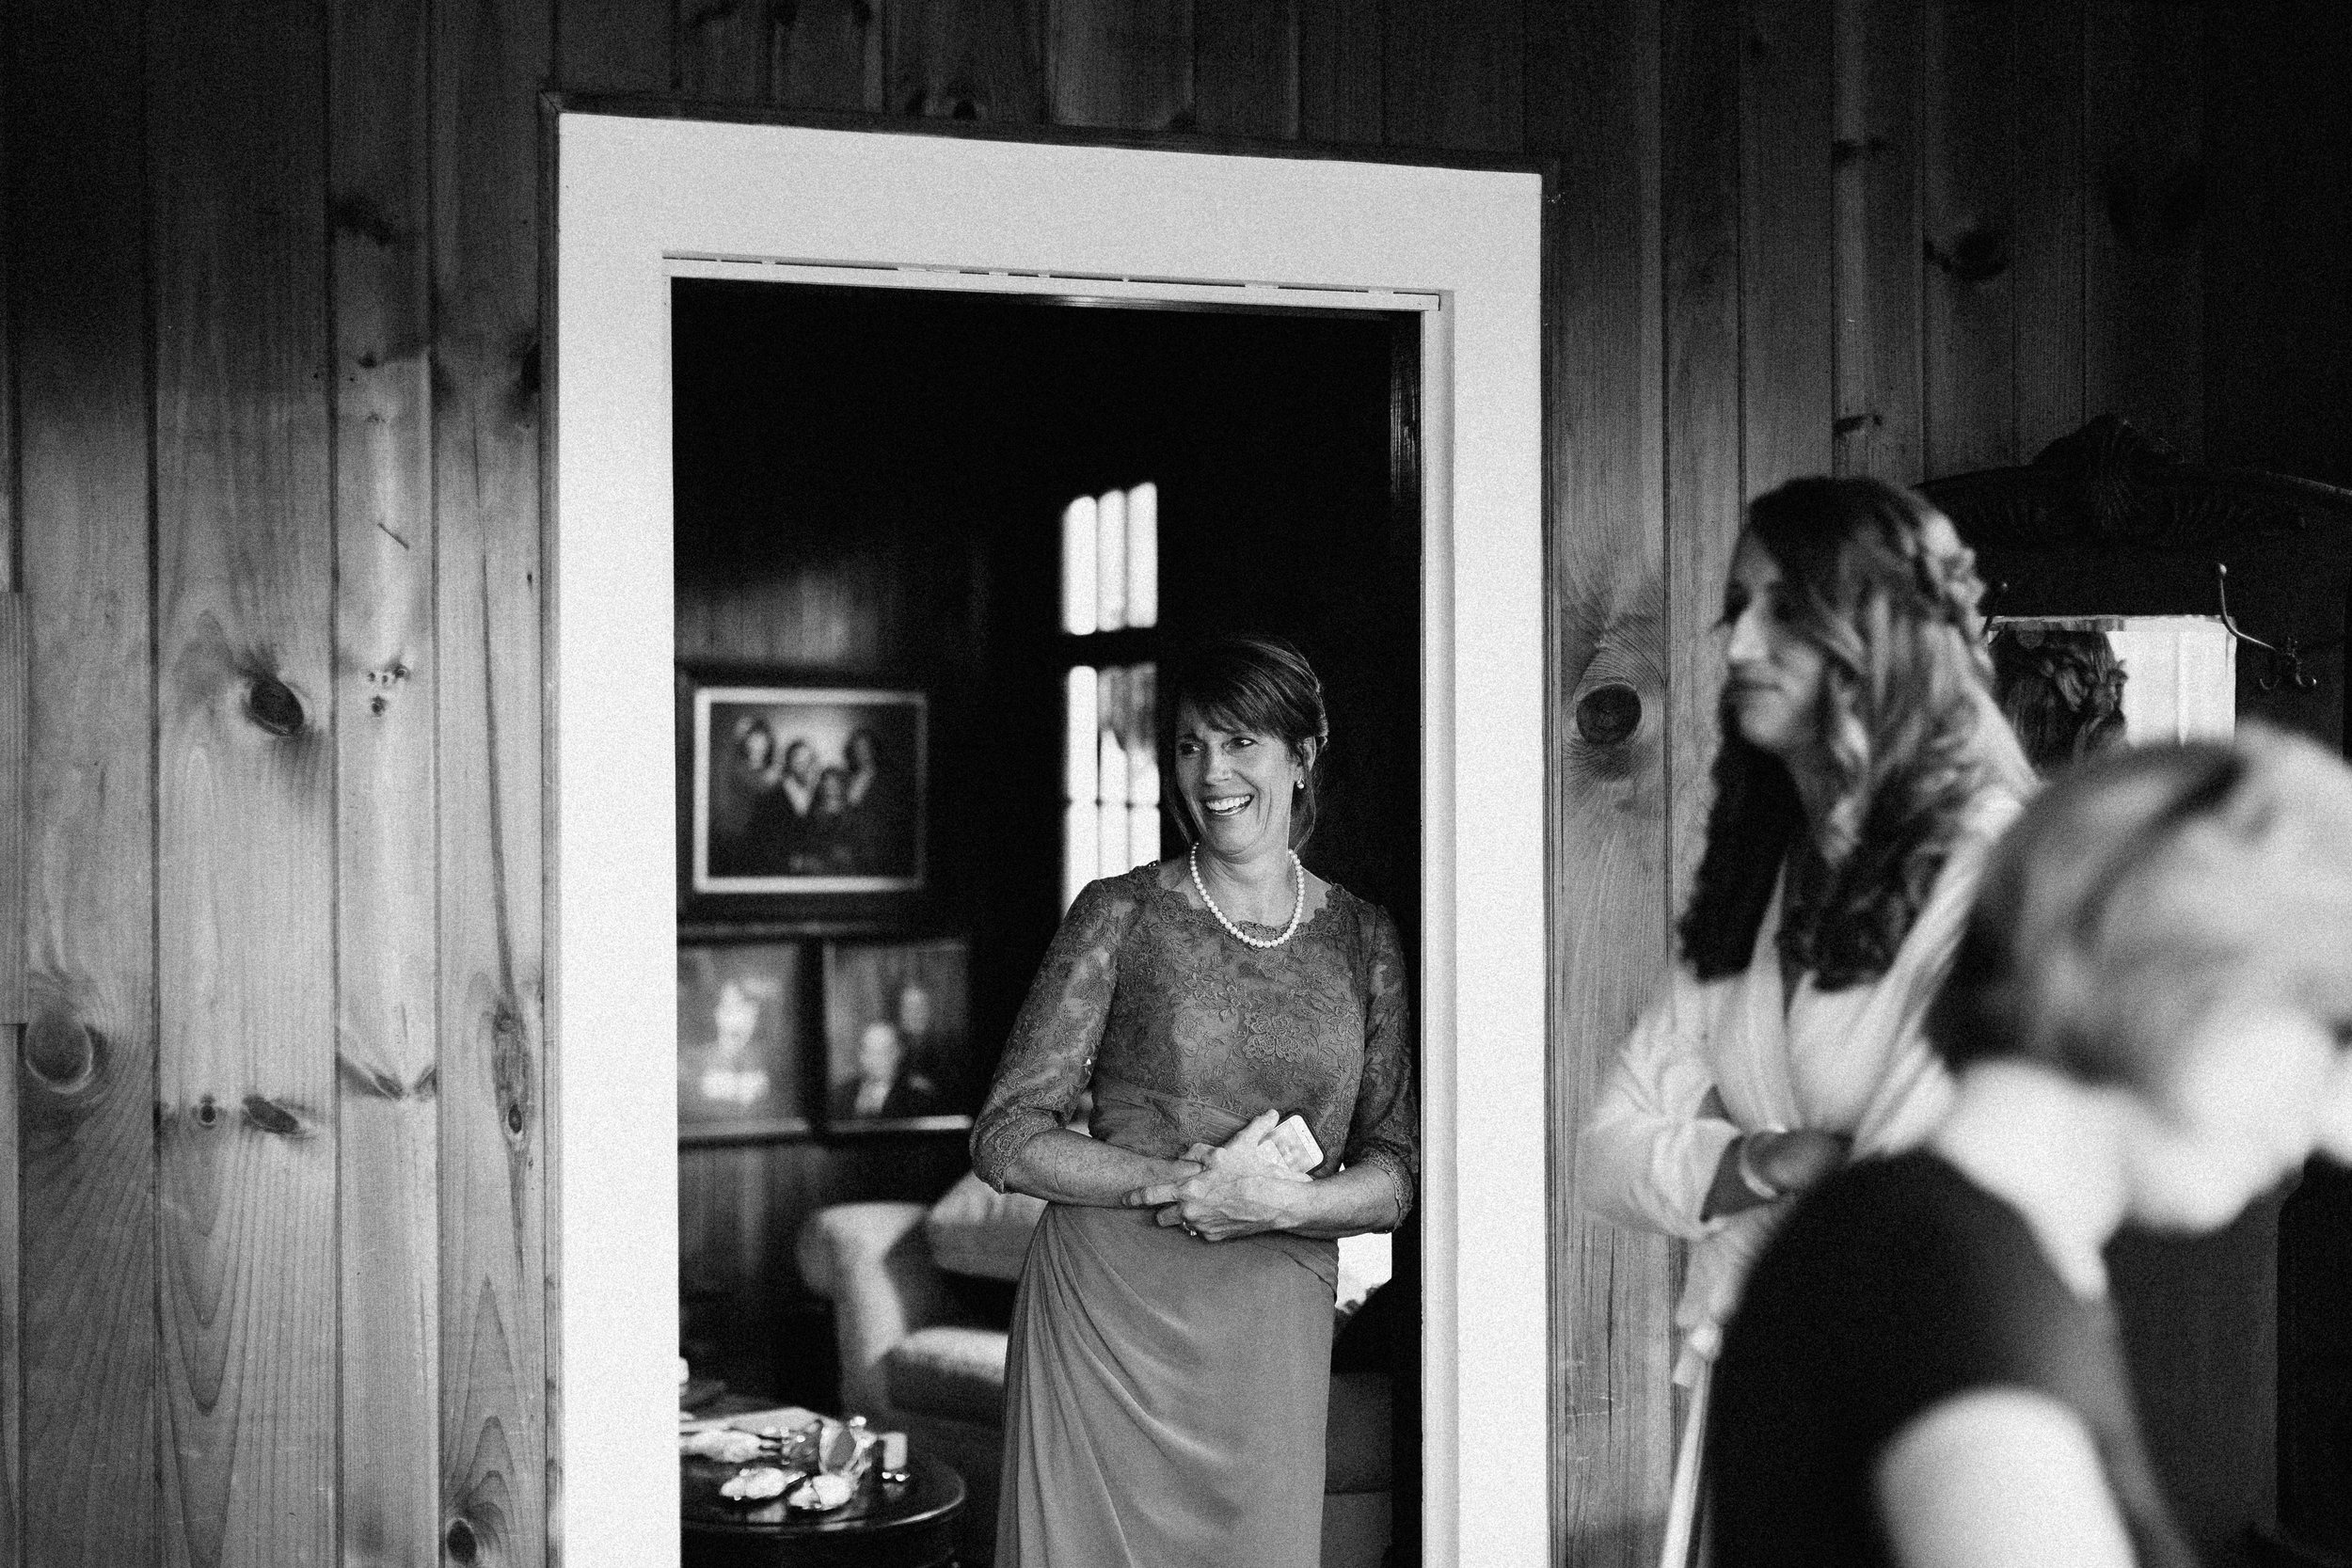 cleveland_georgia_mountain_laurel_farm_natural_classic_timeless_documentary_candid_wedding_emotional_photojournalism_river_west_1147.jpg